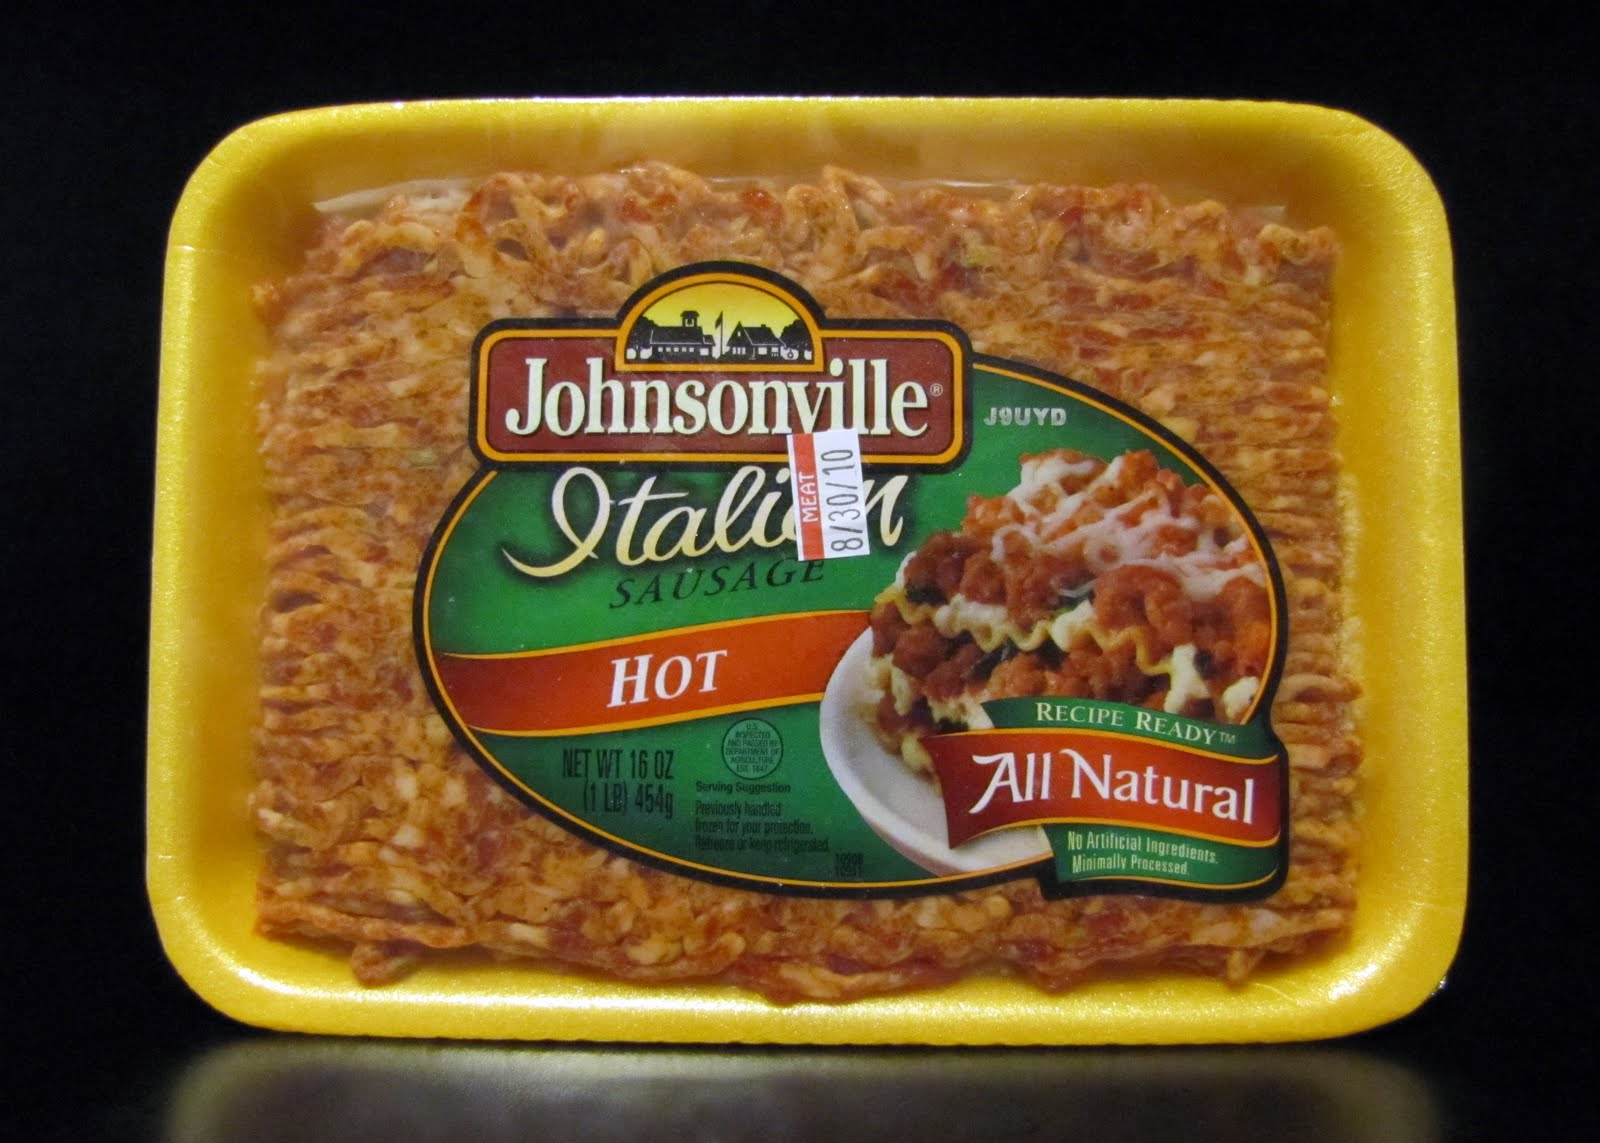 Smells Like Food in Here: Johnsonville Hot Italian Sausage